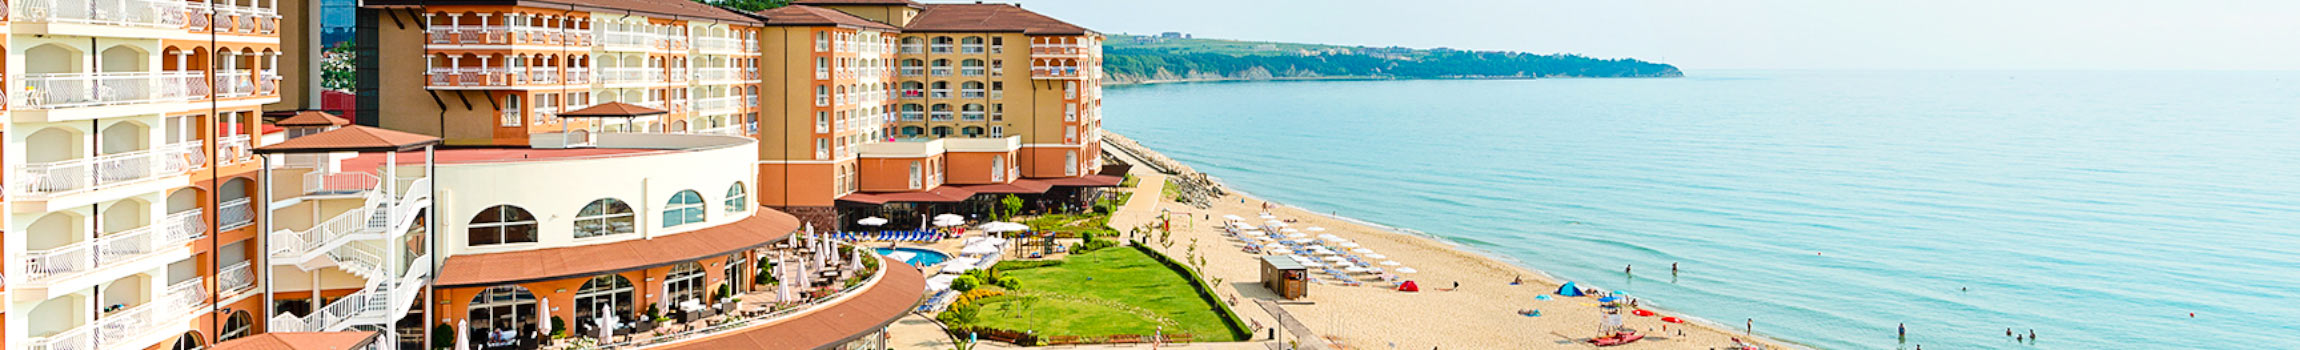 Am Strand gelegenes Hotel in Obzor